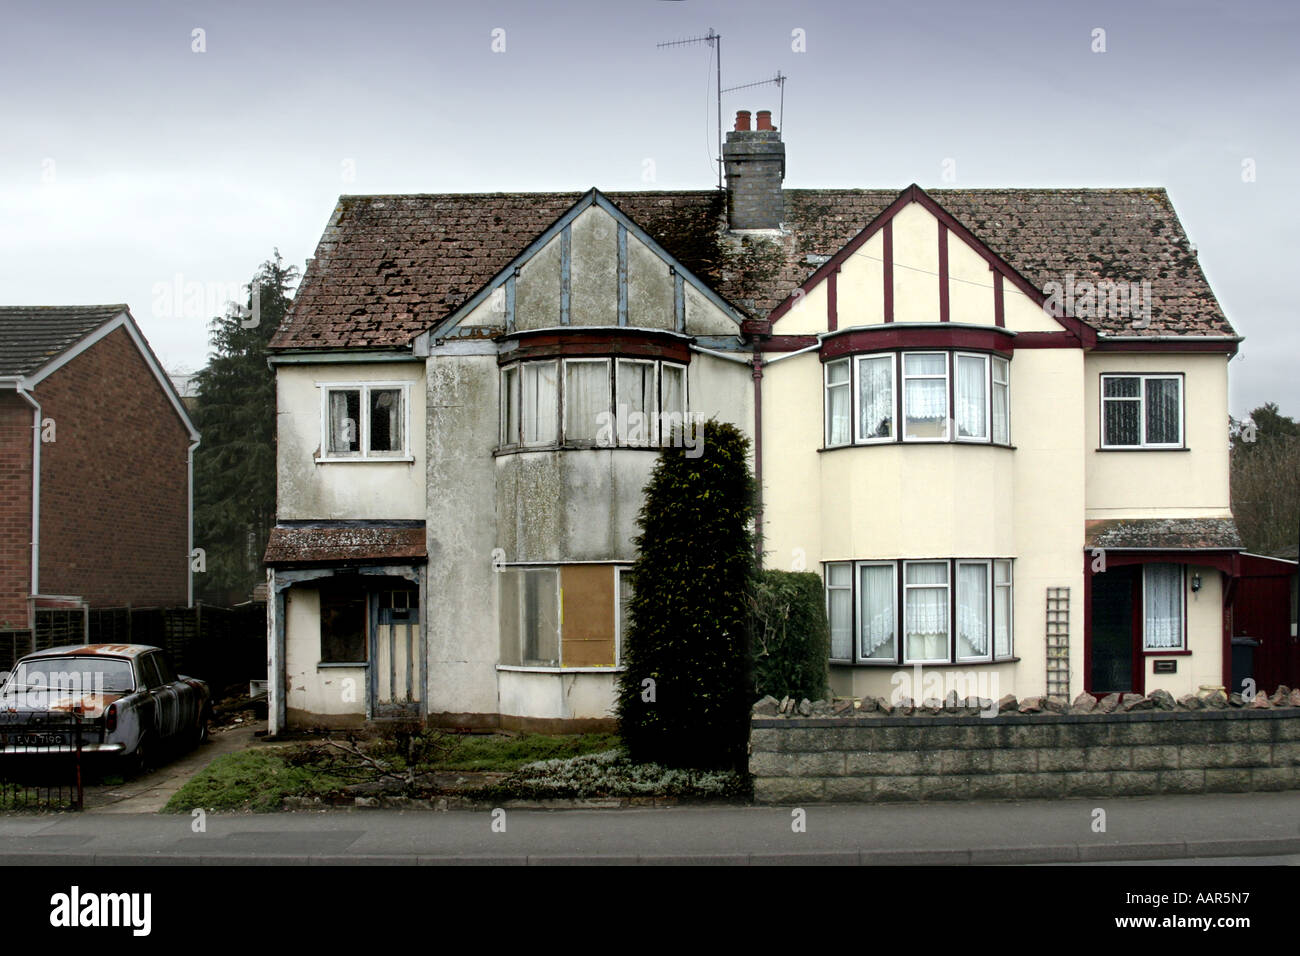 two semi-detached houses. one in good order the other dilapidated - Stock Image